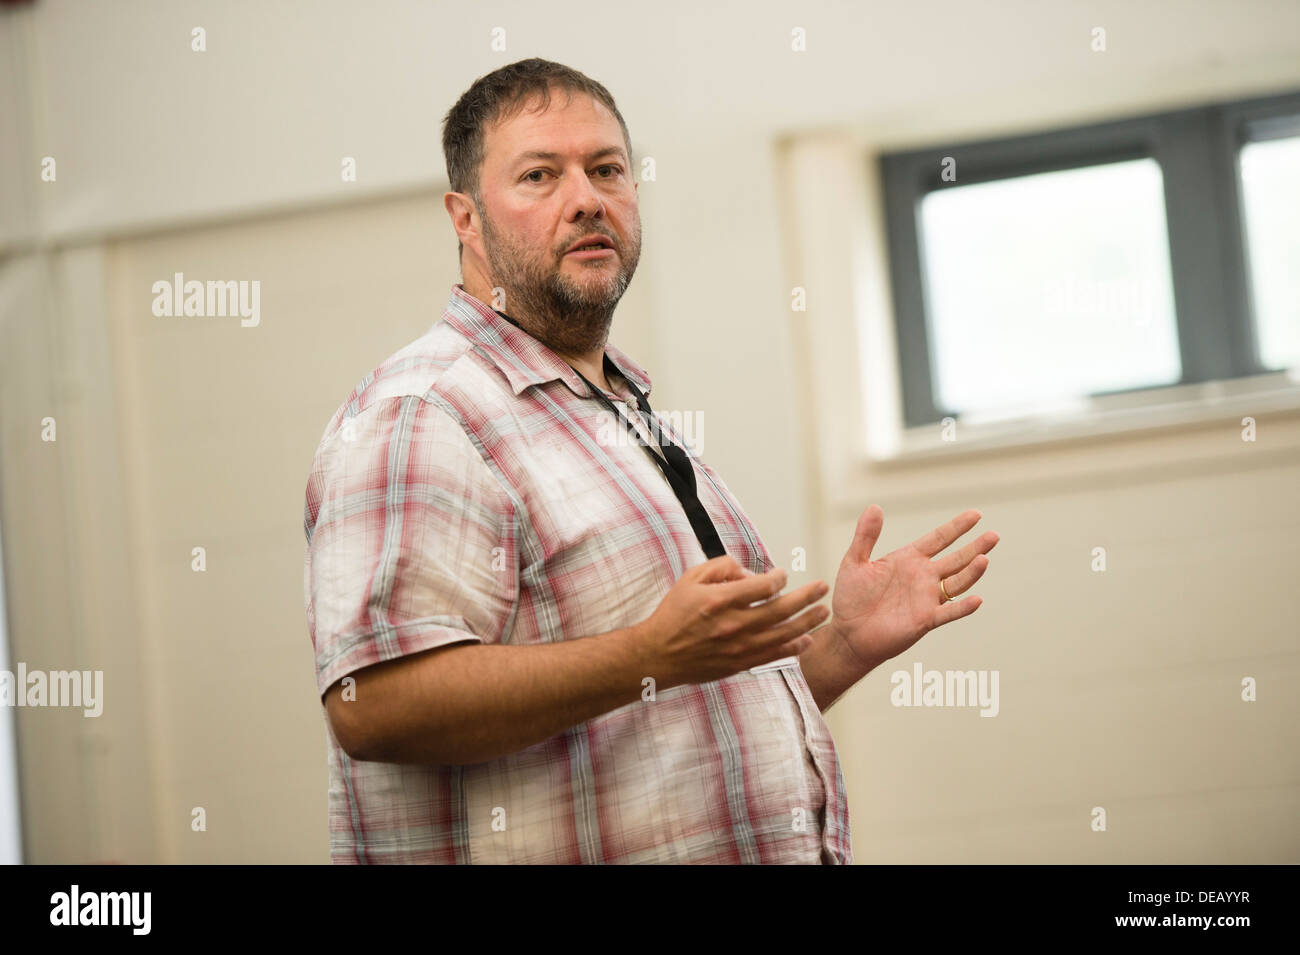 Huw Marshall, Digital content development officer, S4C broadcast television channel, Wales UK - Stock Image